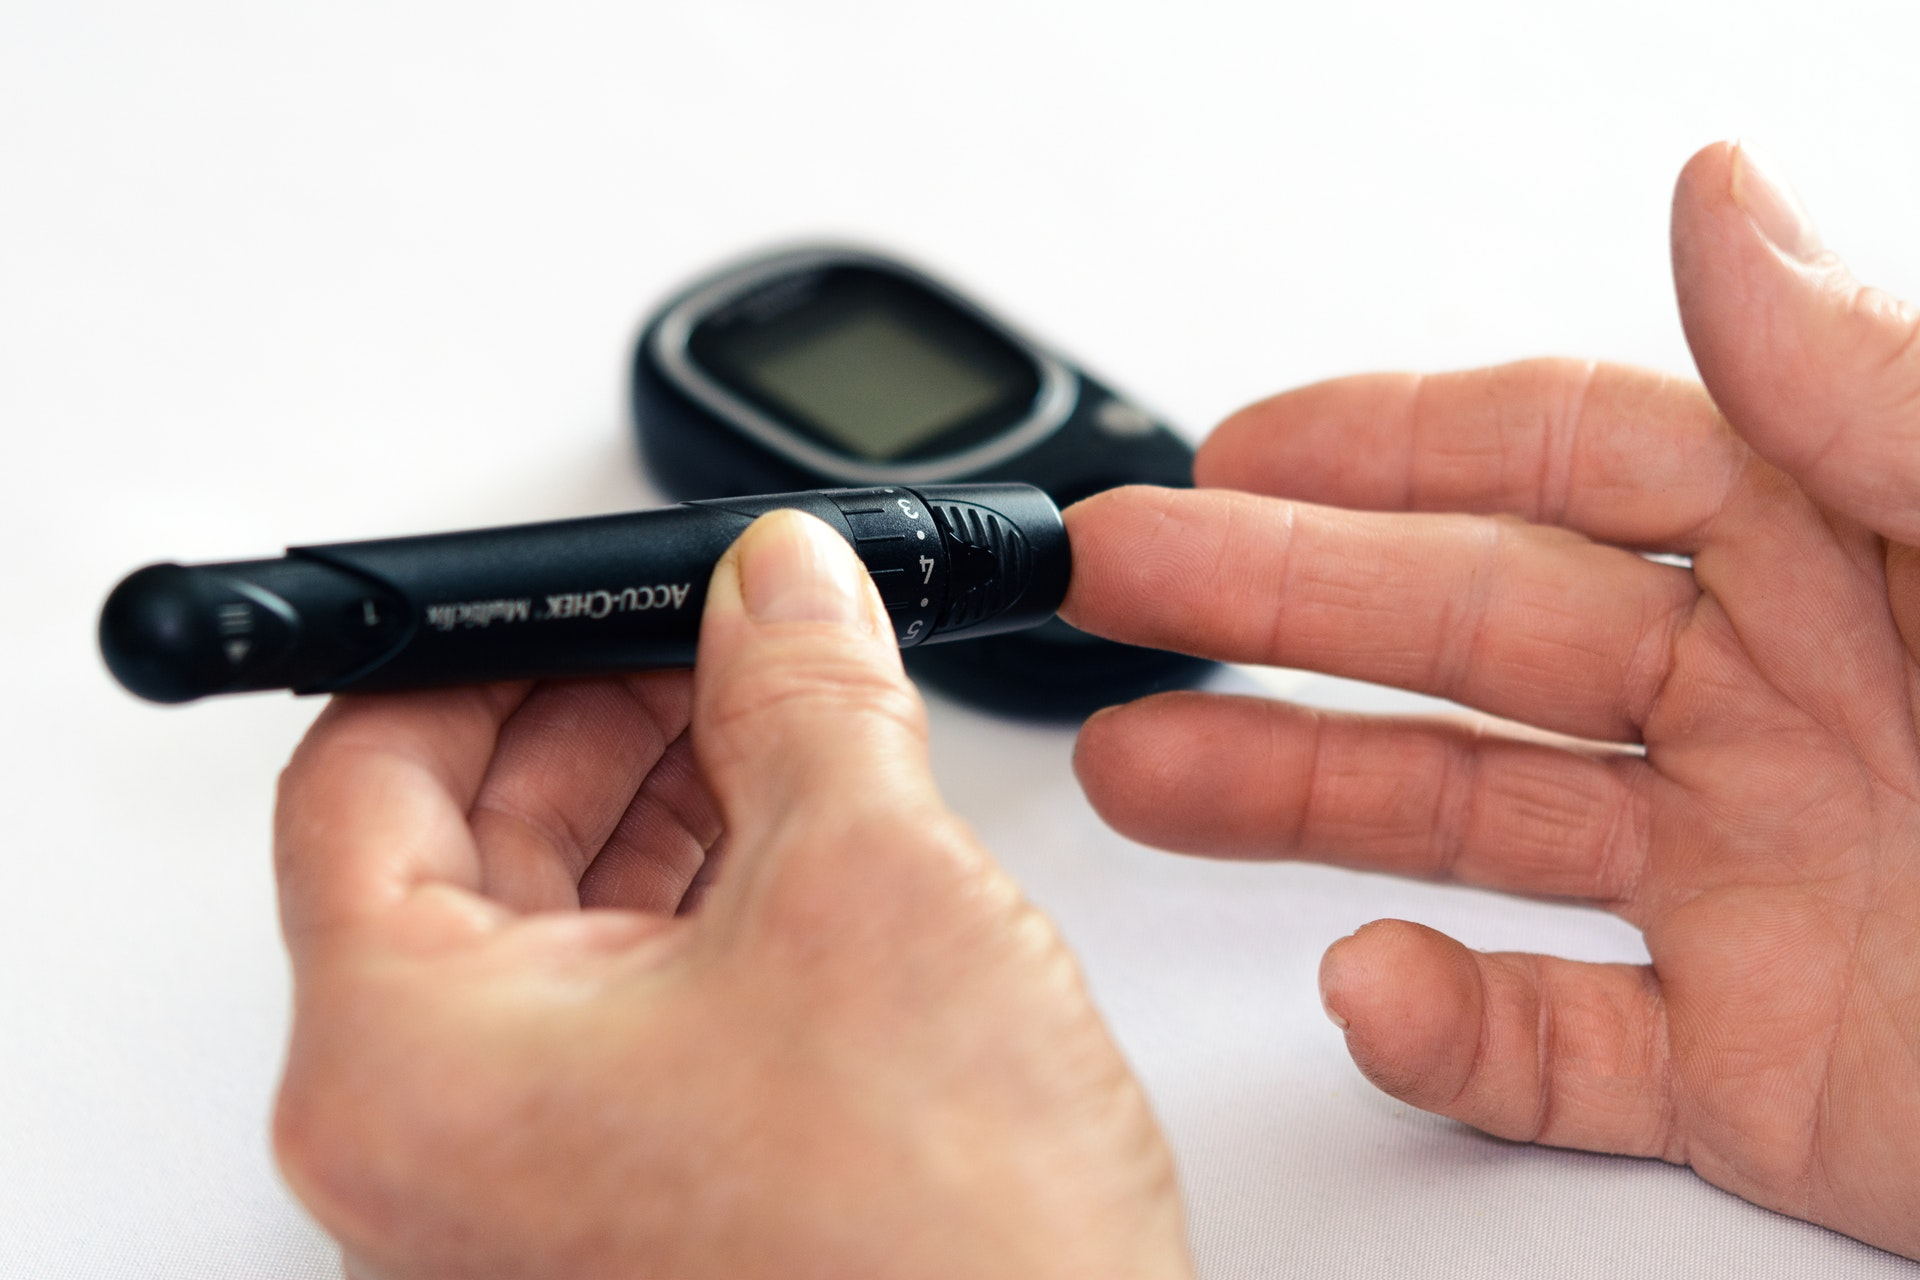 Thumbnail for Work on Reversing Your Diabetes Rather Than Simply Managing It